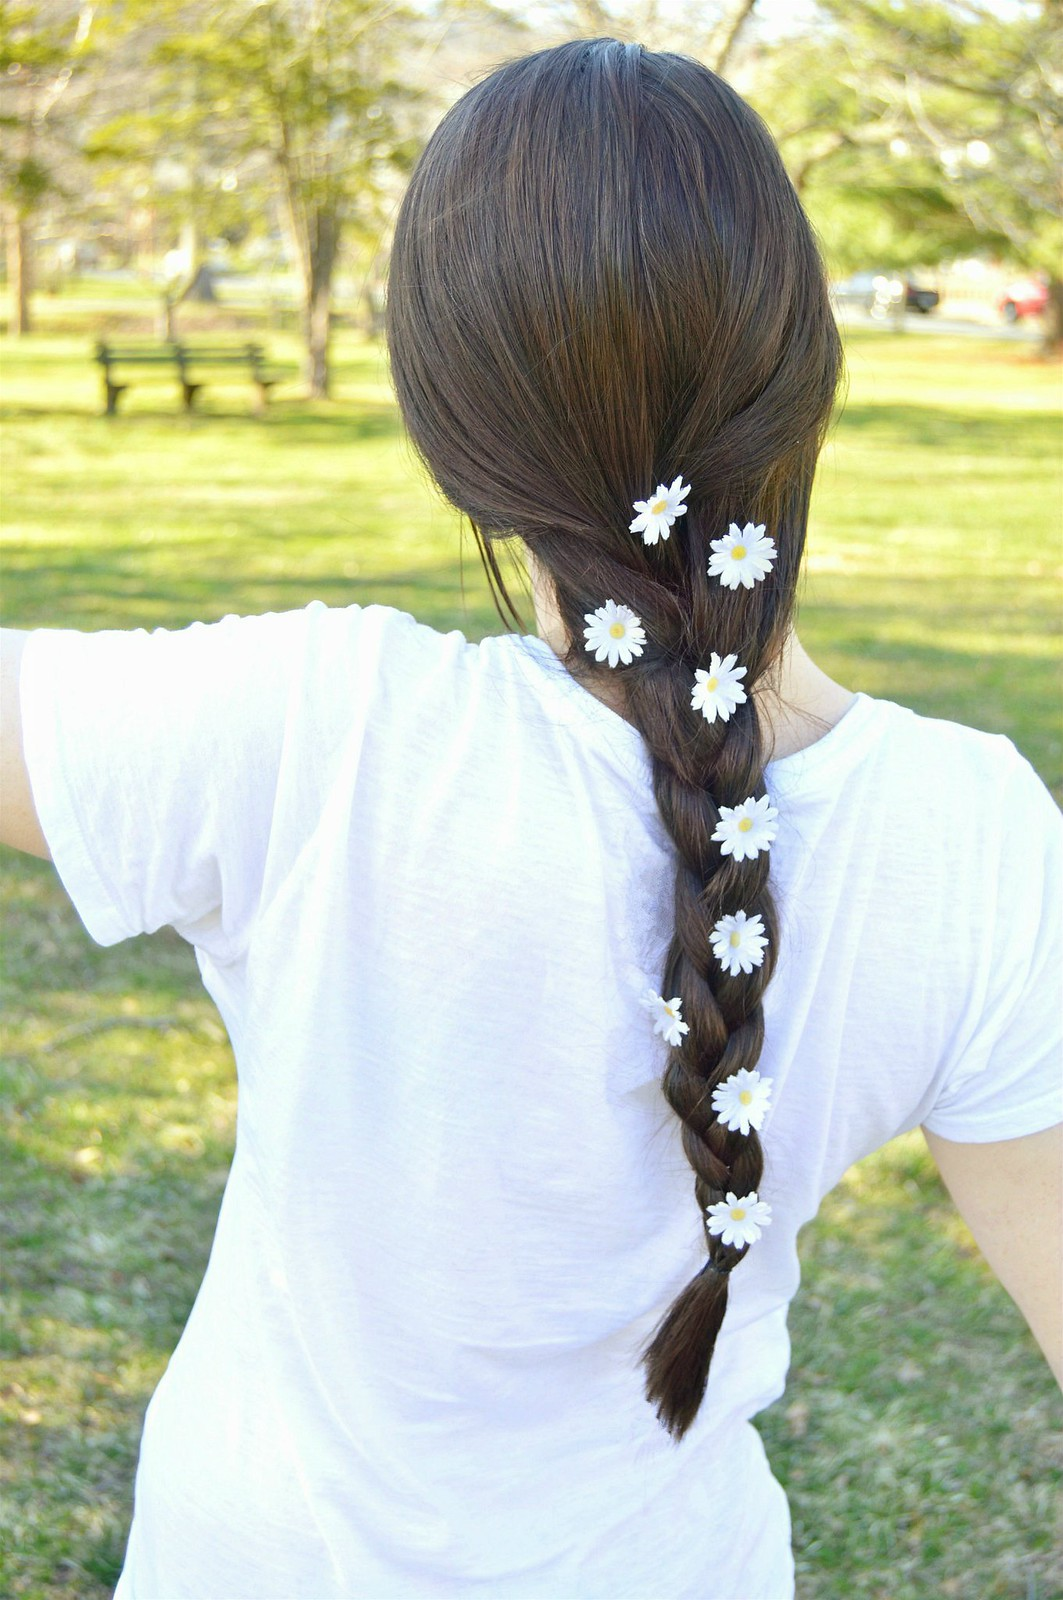 hairstyle-braid-flowers-hair